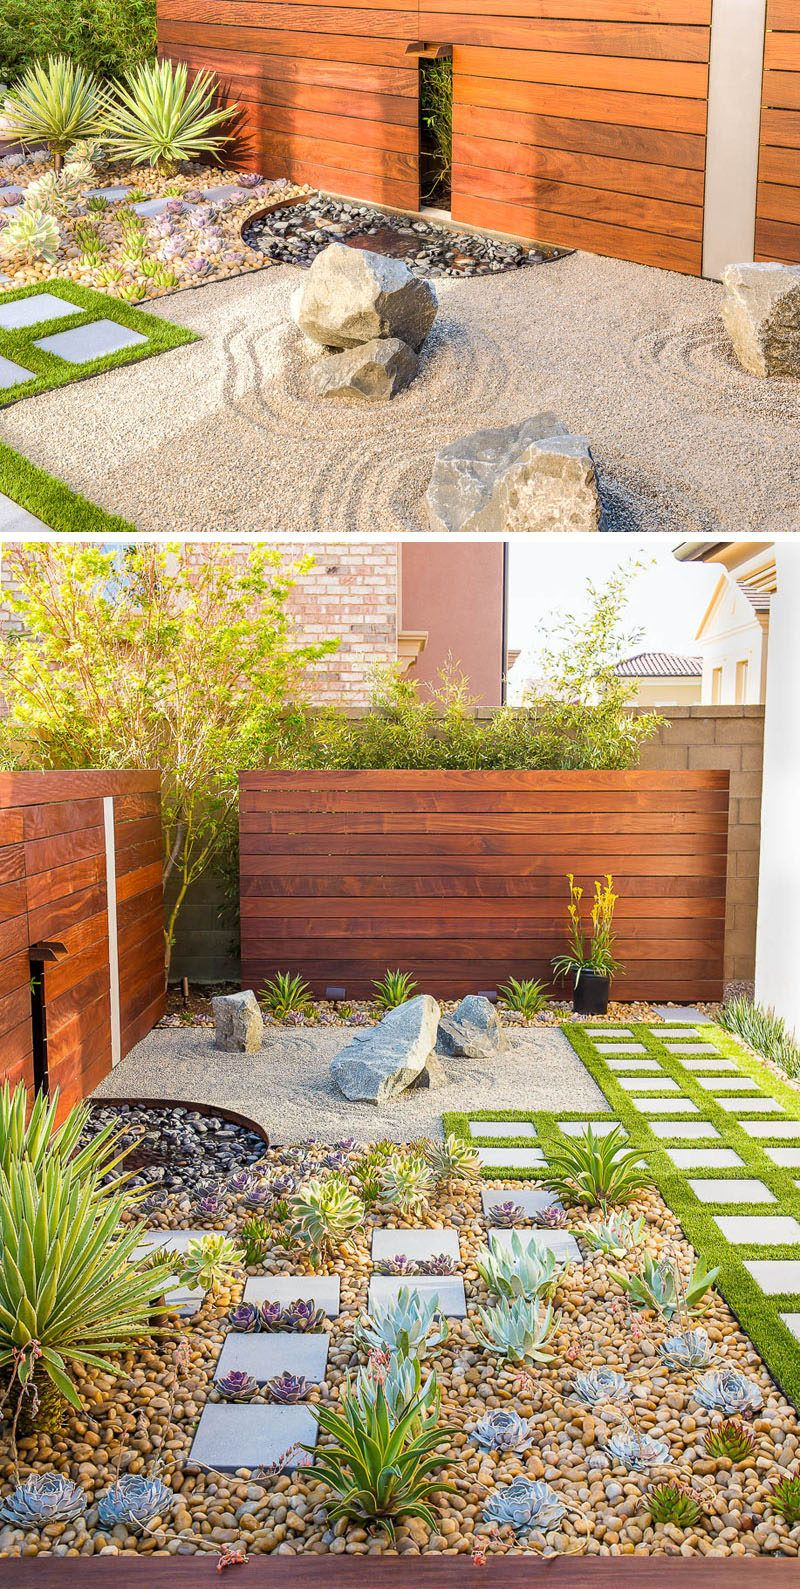 8 Elements To Include When Designing Your Zen Garden   gardens     Everything Plants and Flowers  8 Elements To Include When Designing Your Zen  Gard